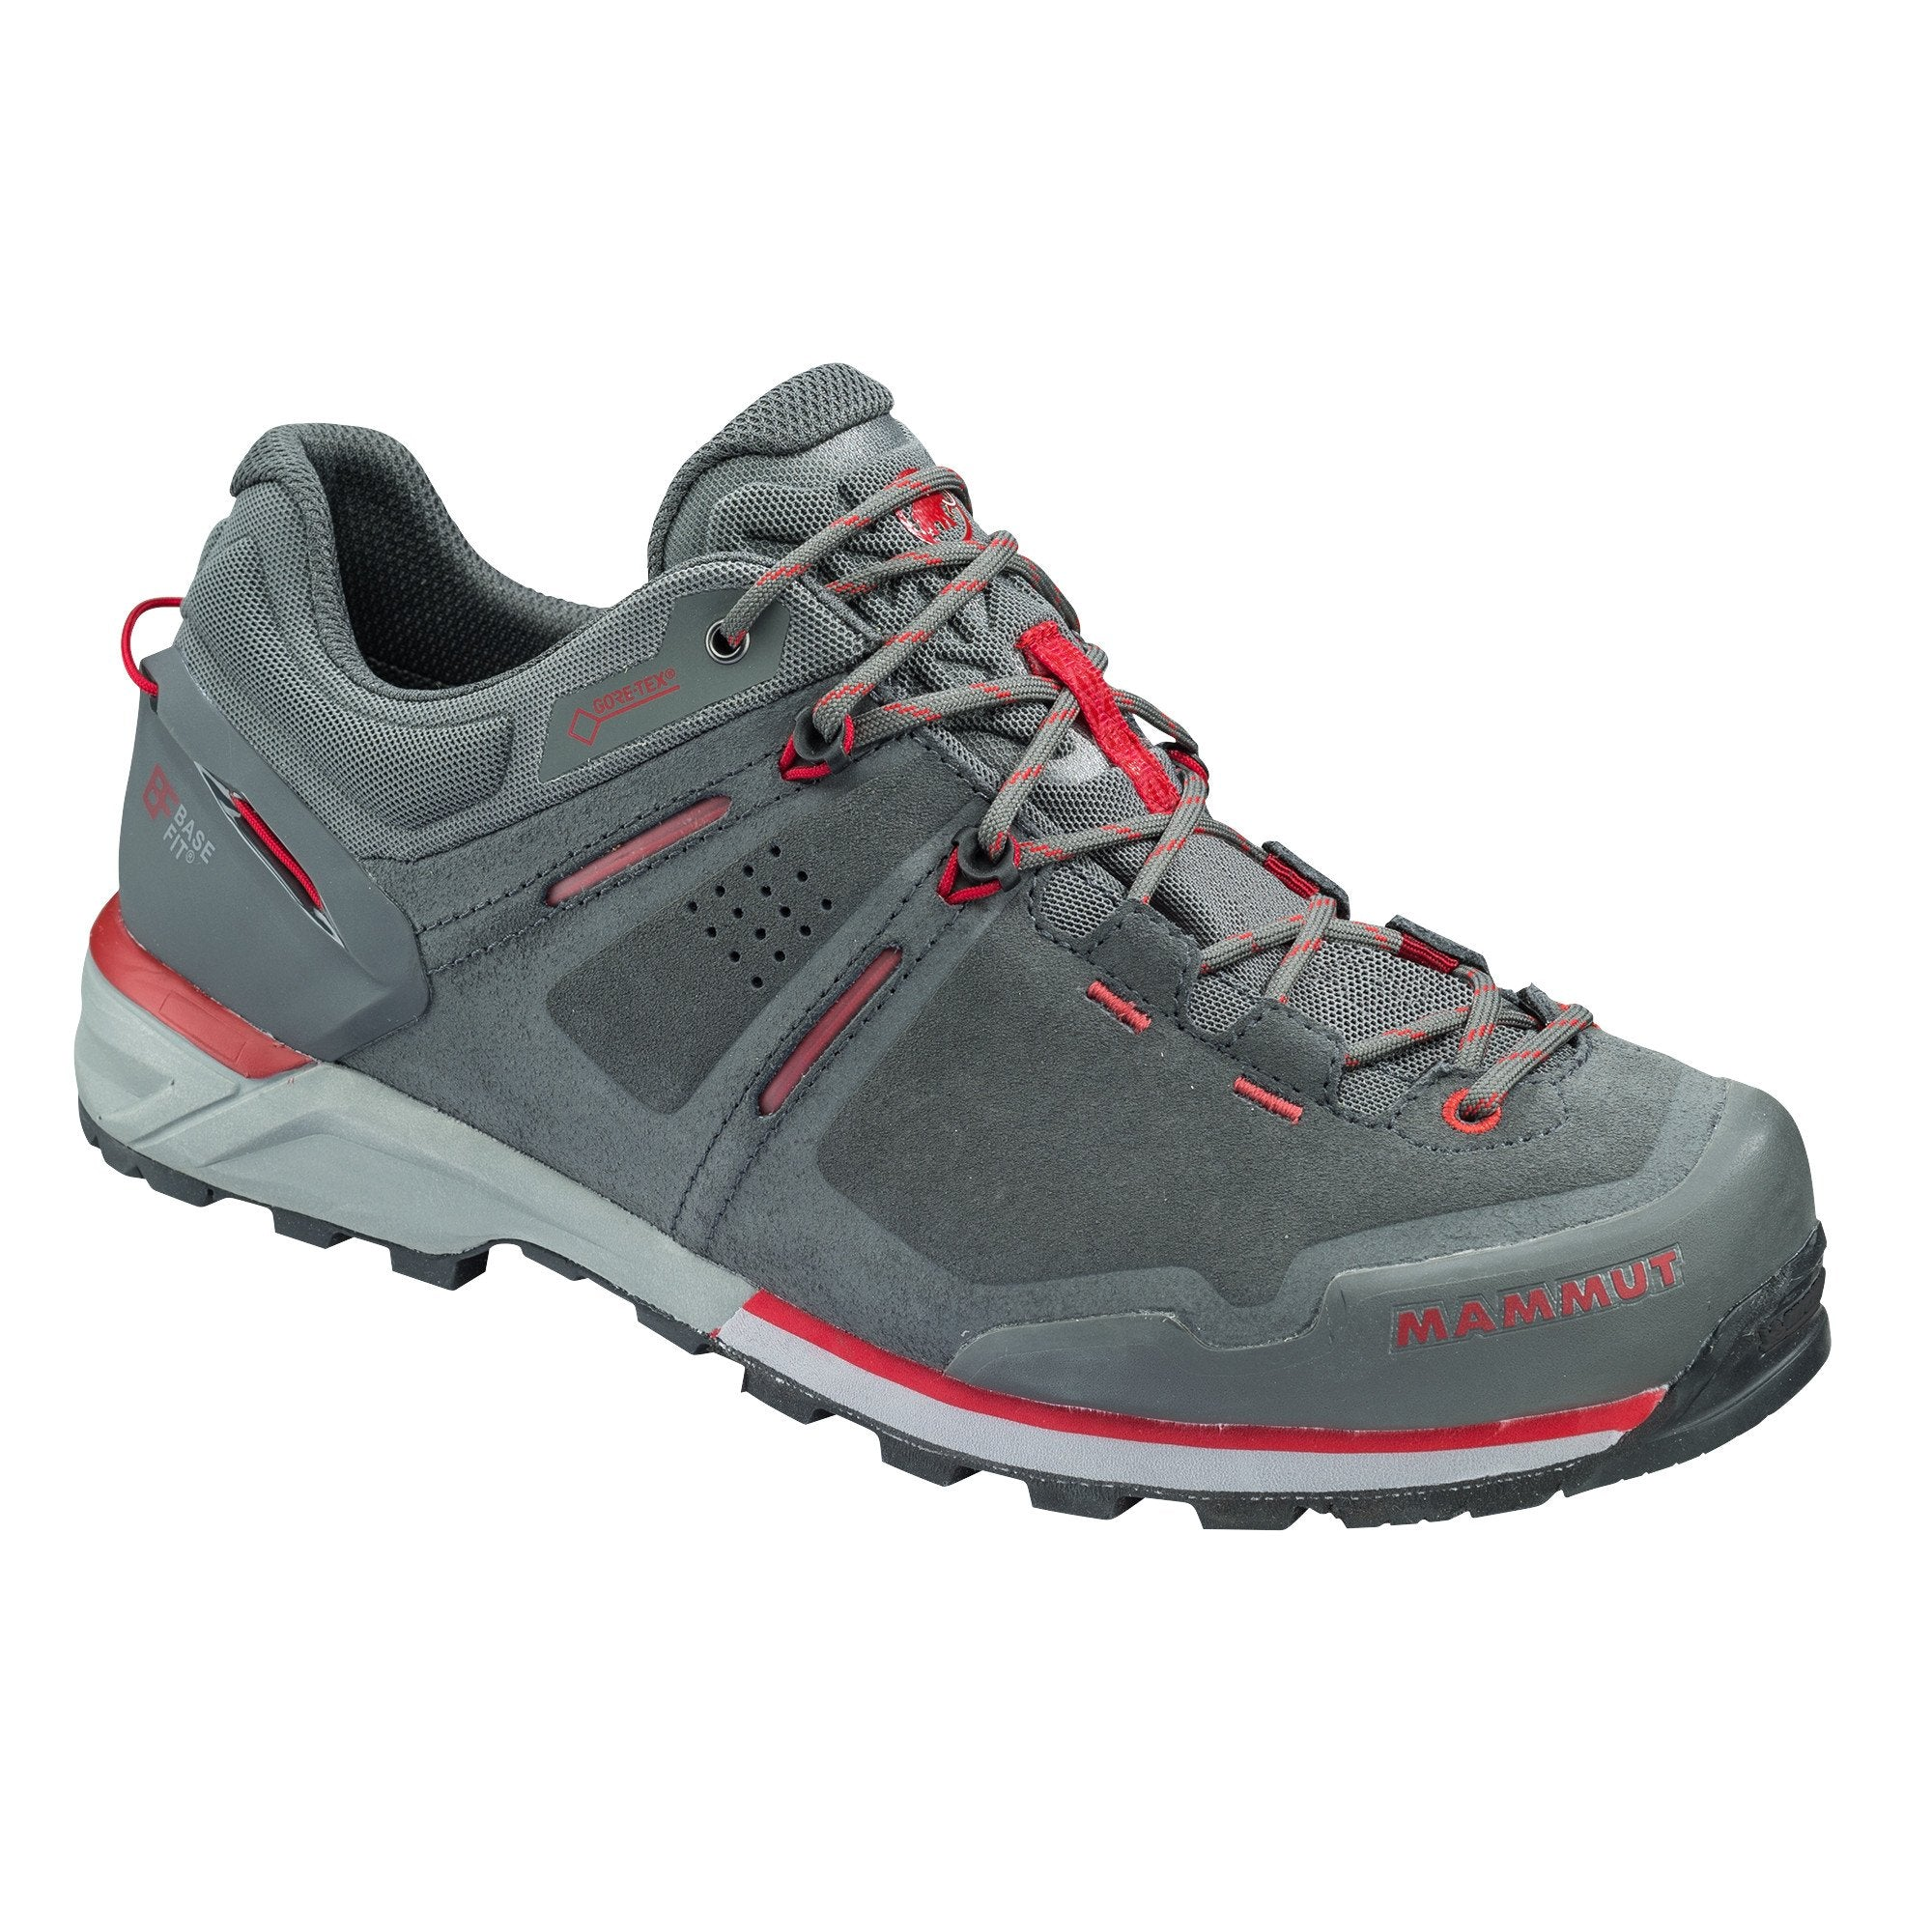 Mammut Alnasca Low GTX approach shoe, in grey and red colours, outer side view